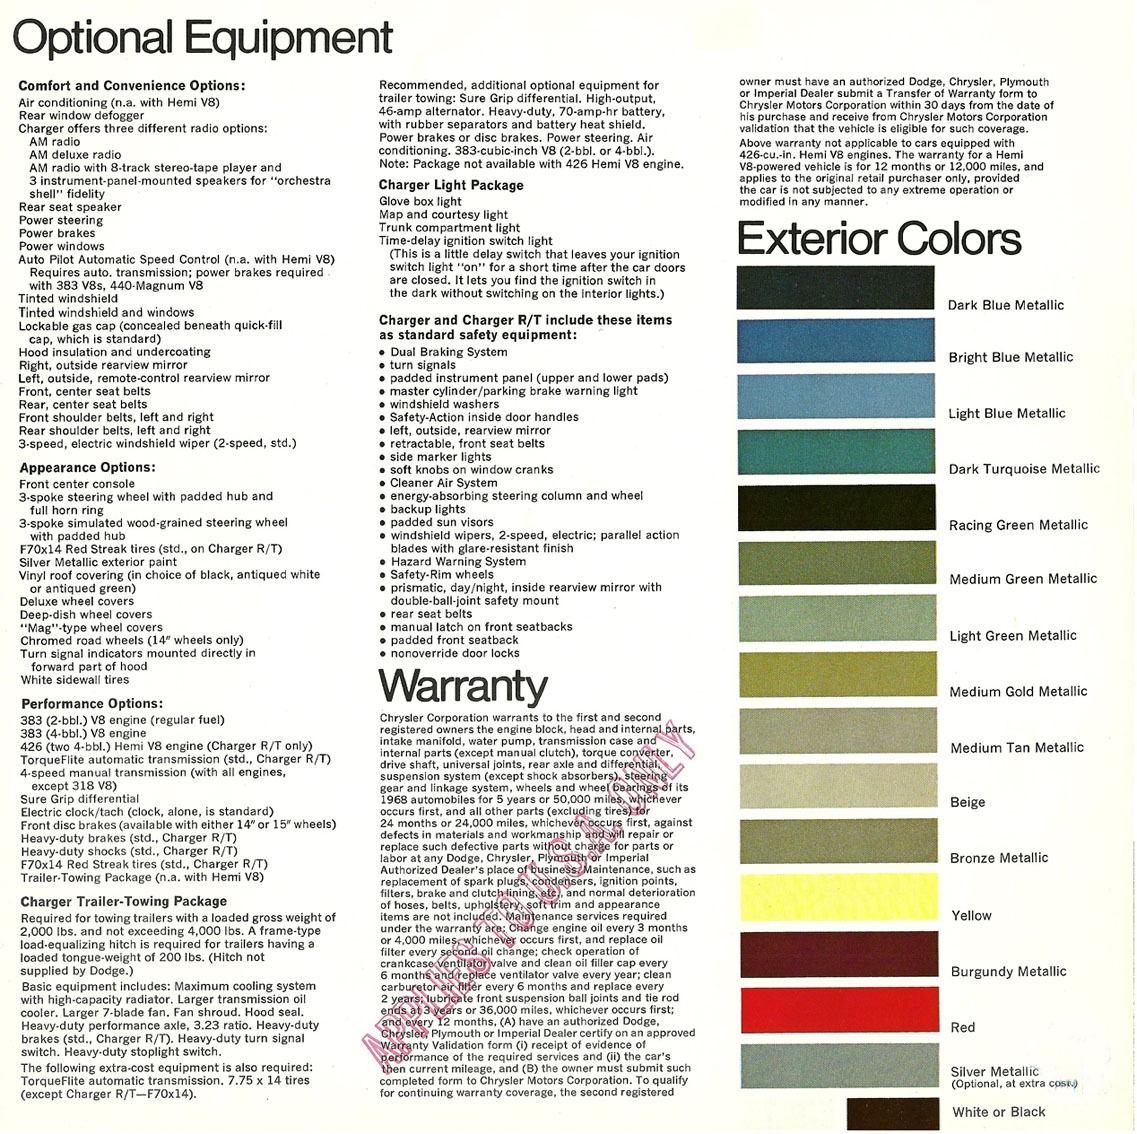 1968 Dodge Charger Interior Colors Www Indiepedia Org